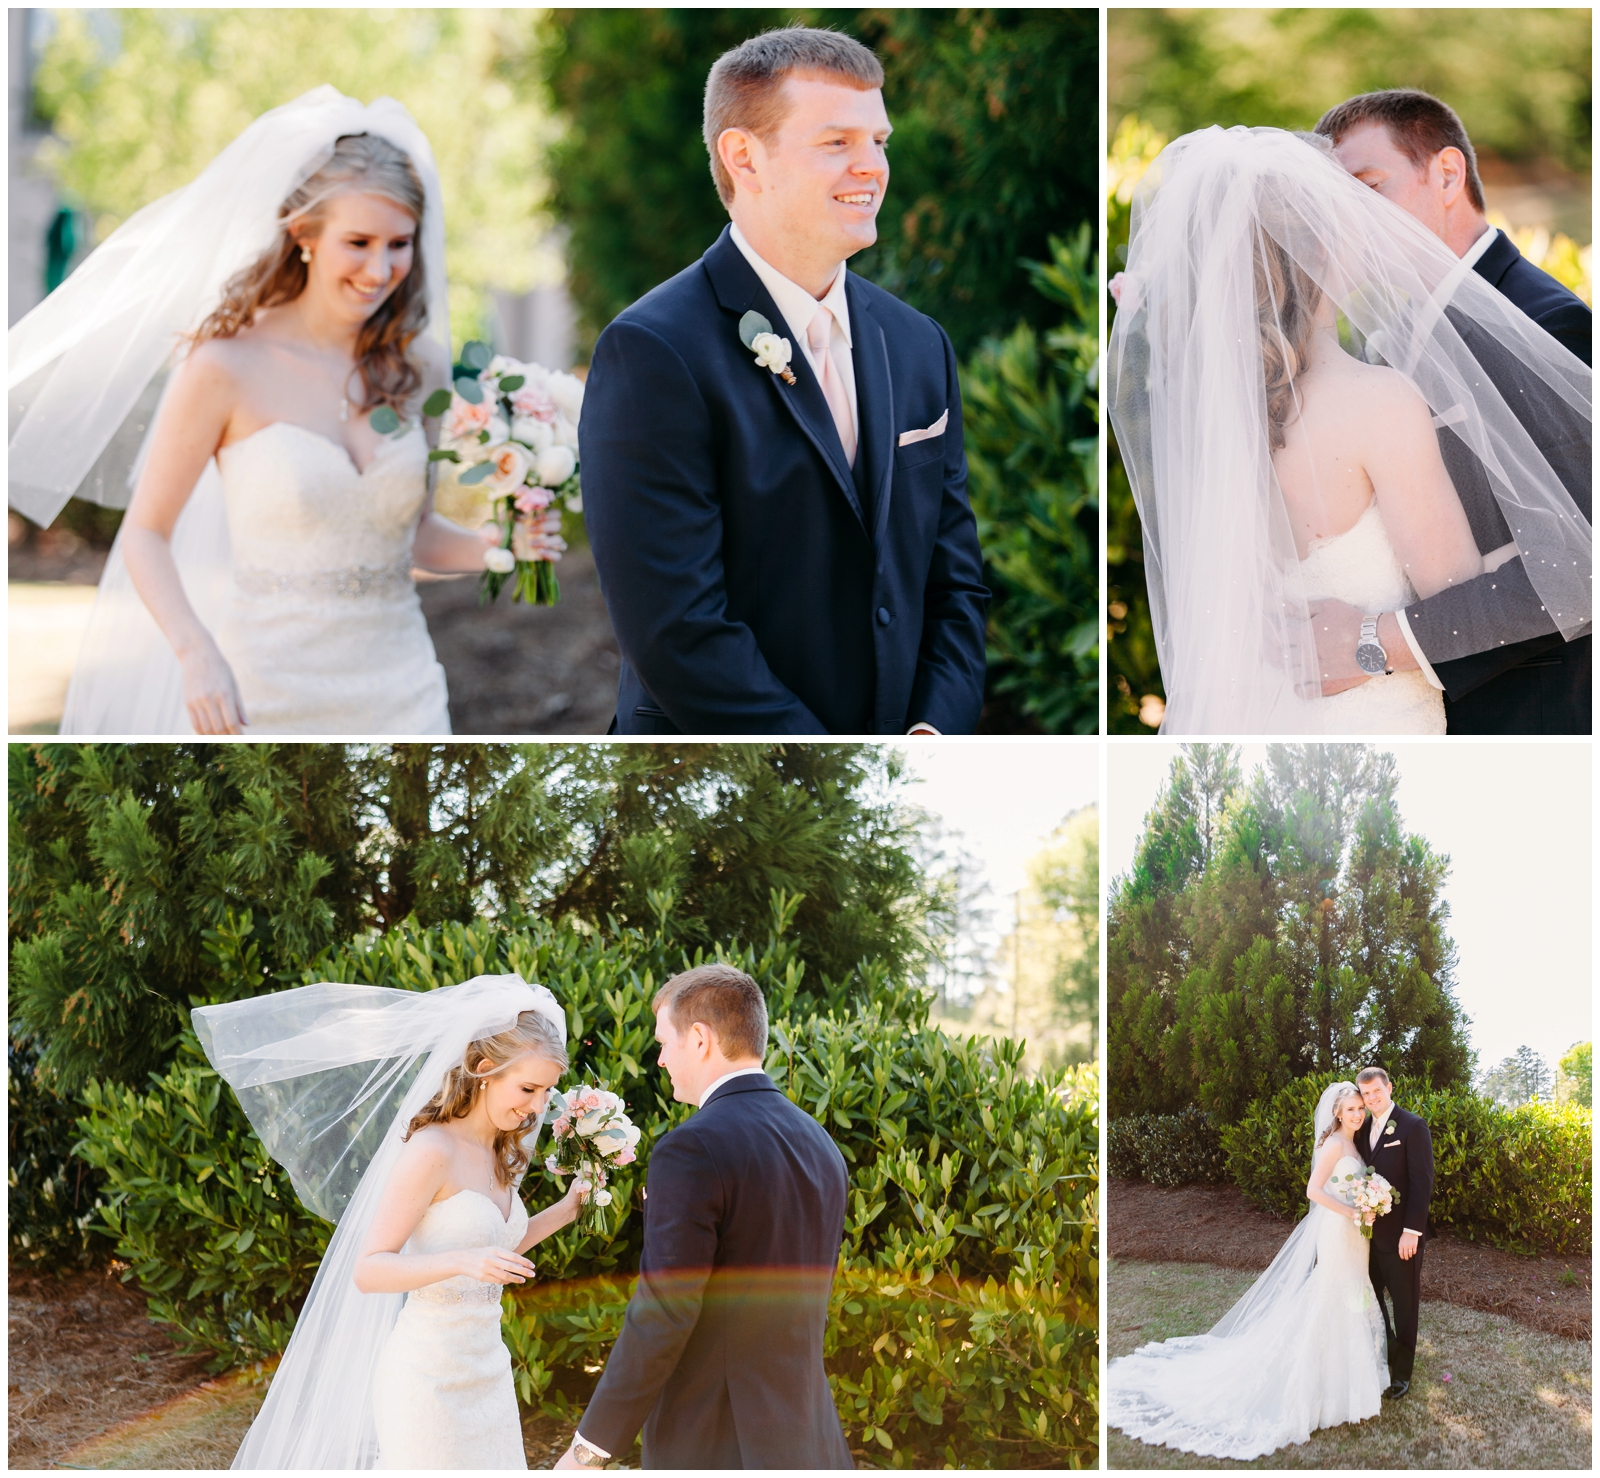 Morgan & Kyle_RoswellWedding_ArdentStory_0008